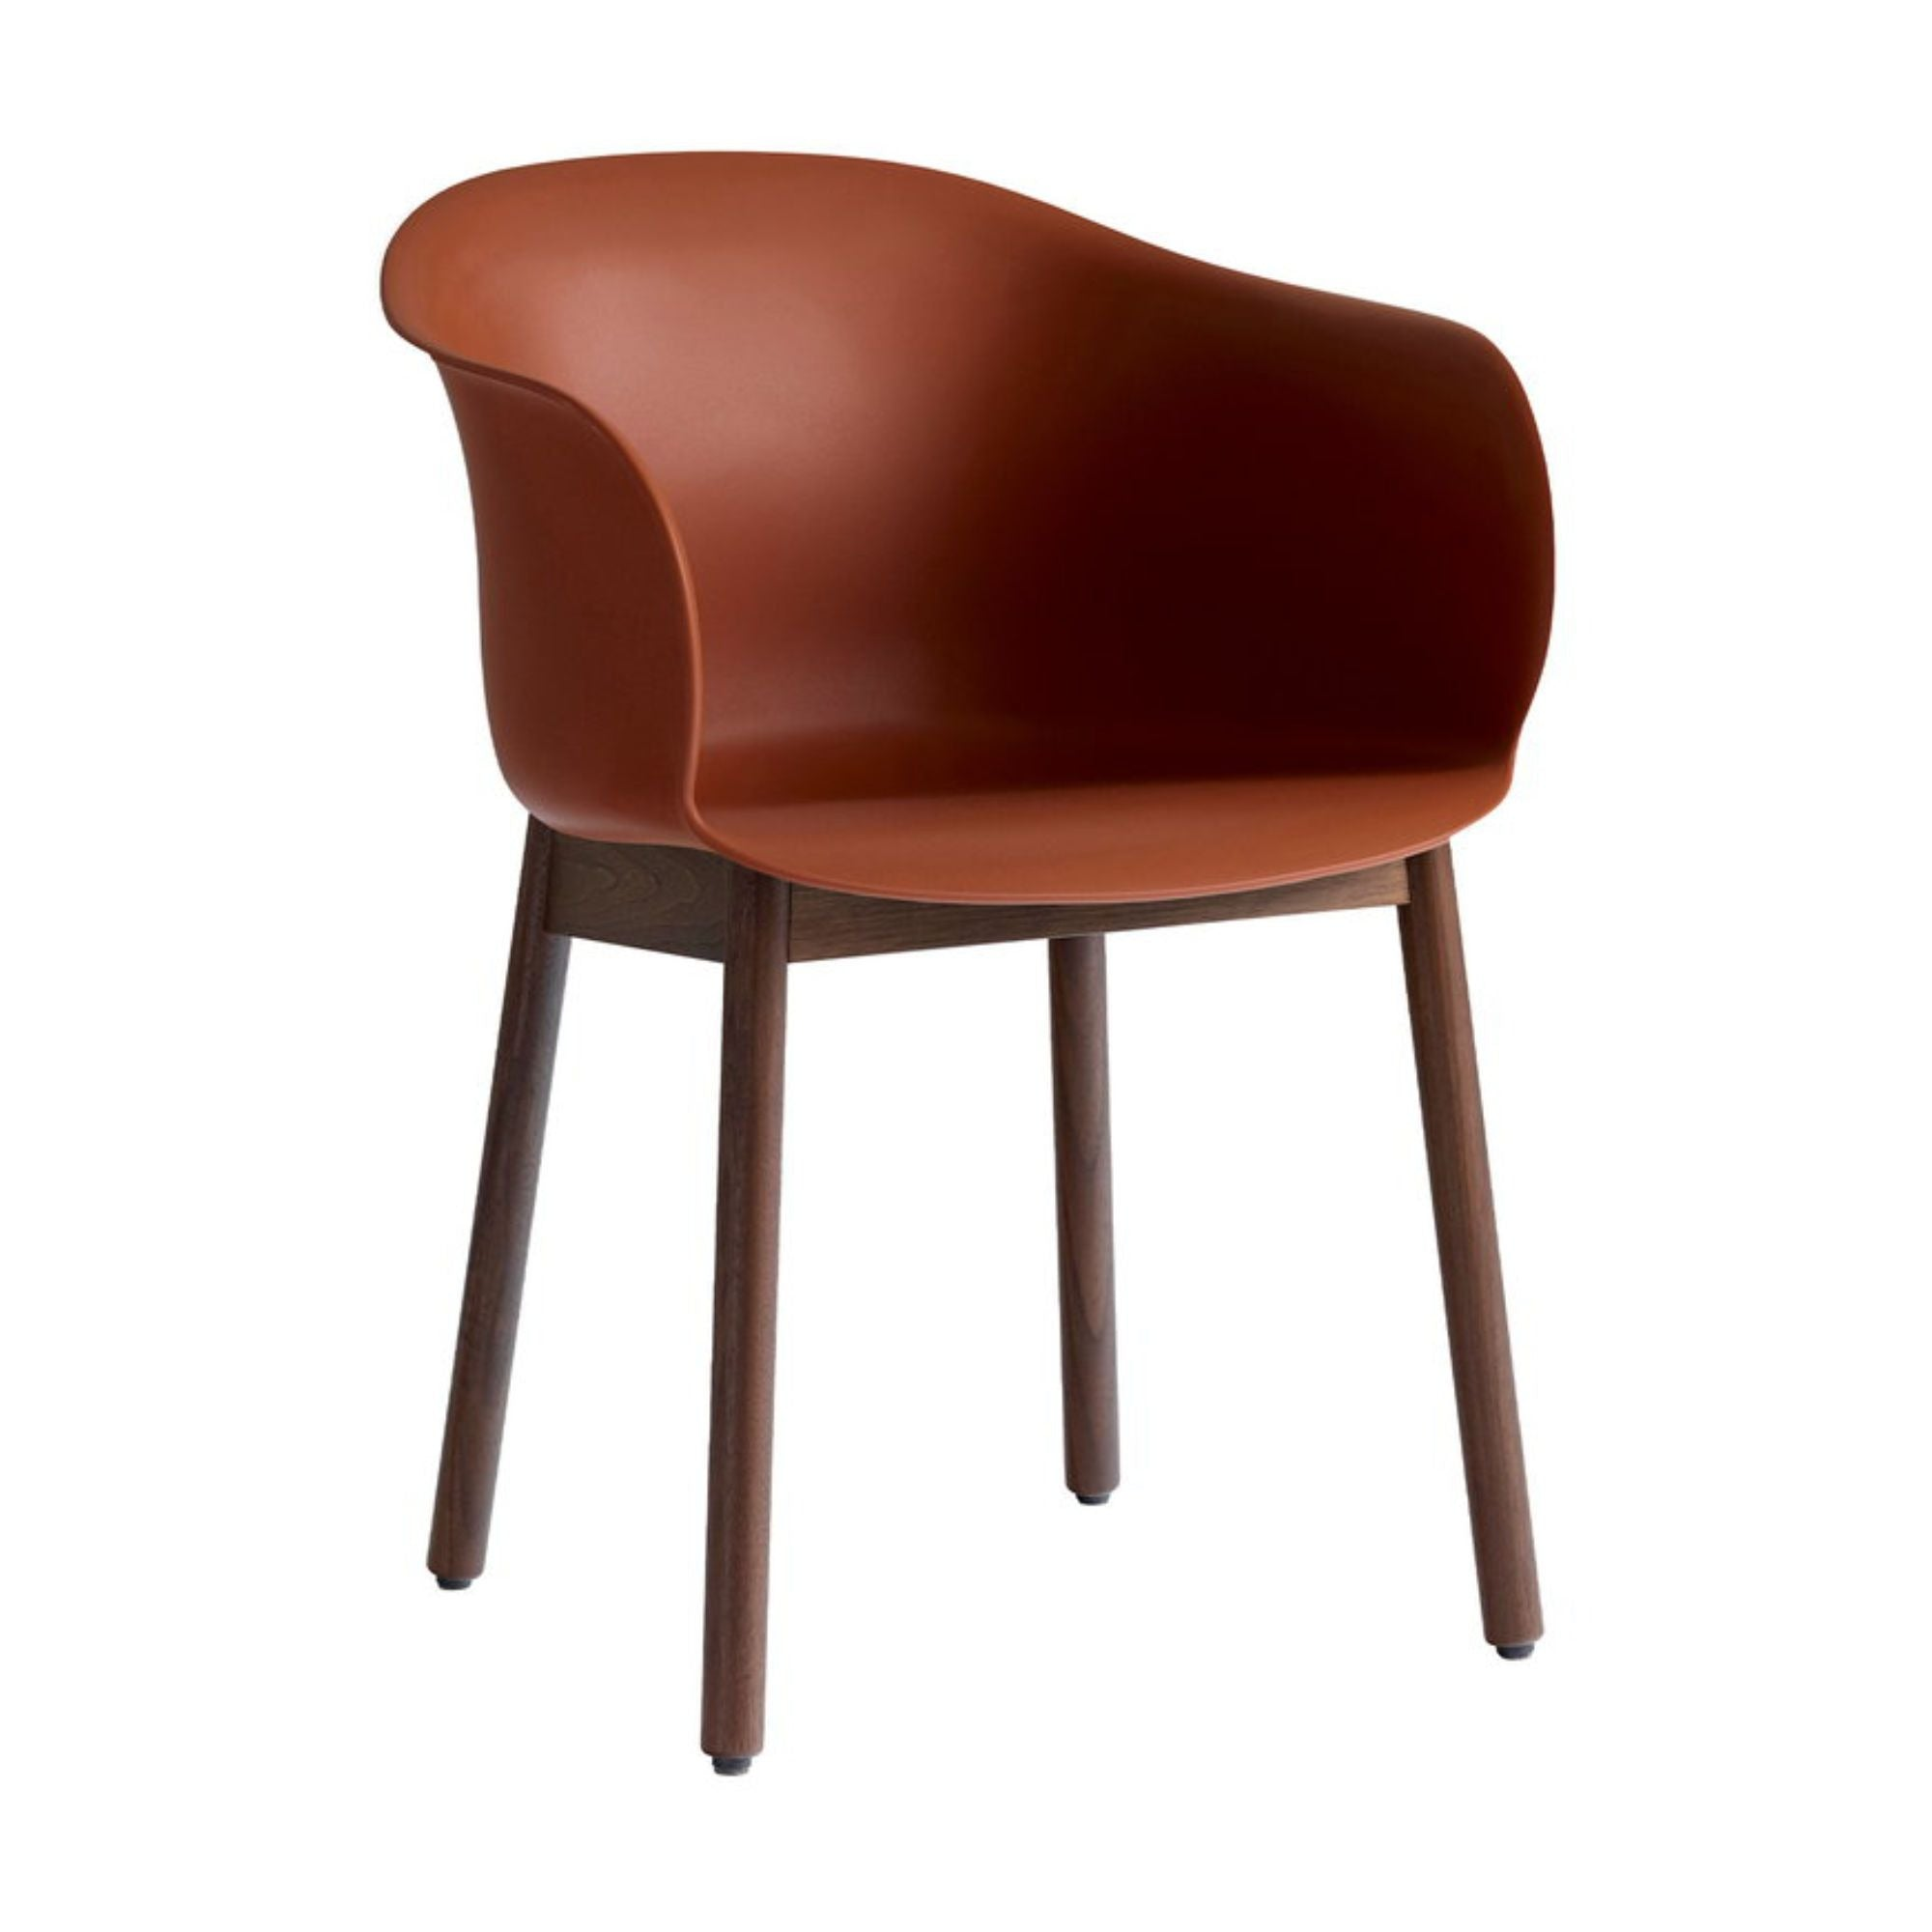 &Tradition JH30 Elefy Chair , Copper Brown - Walnut